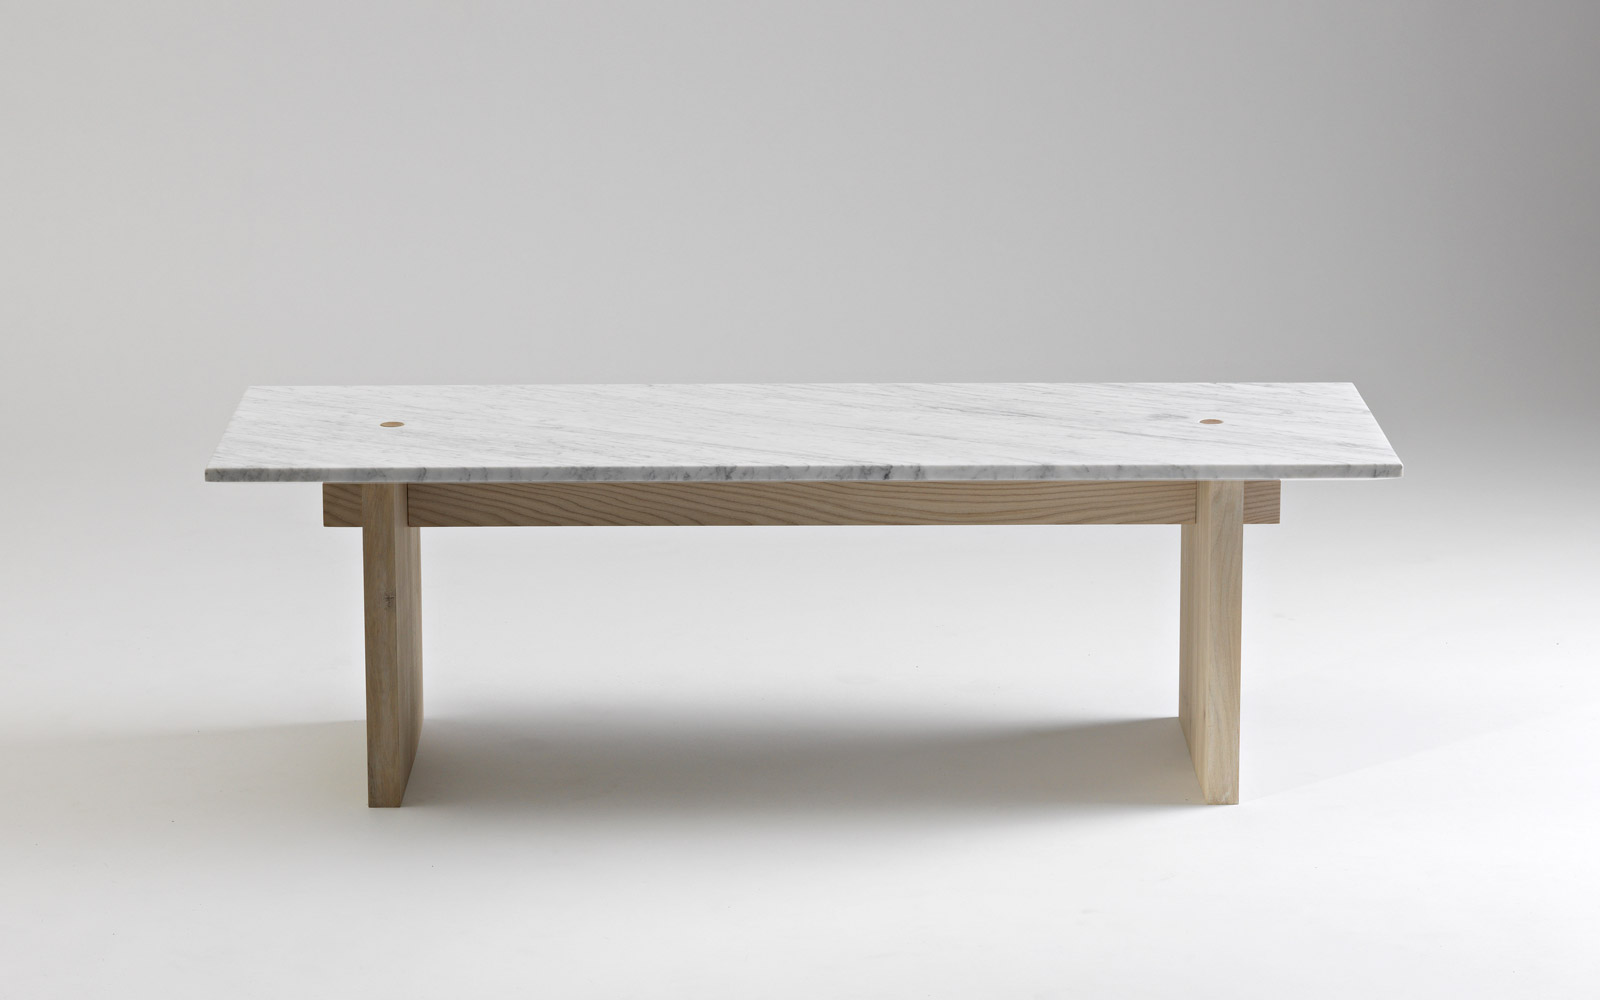 Solid Coffee Table - Minimalistic design in marble and ash